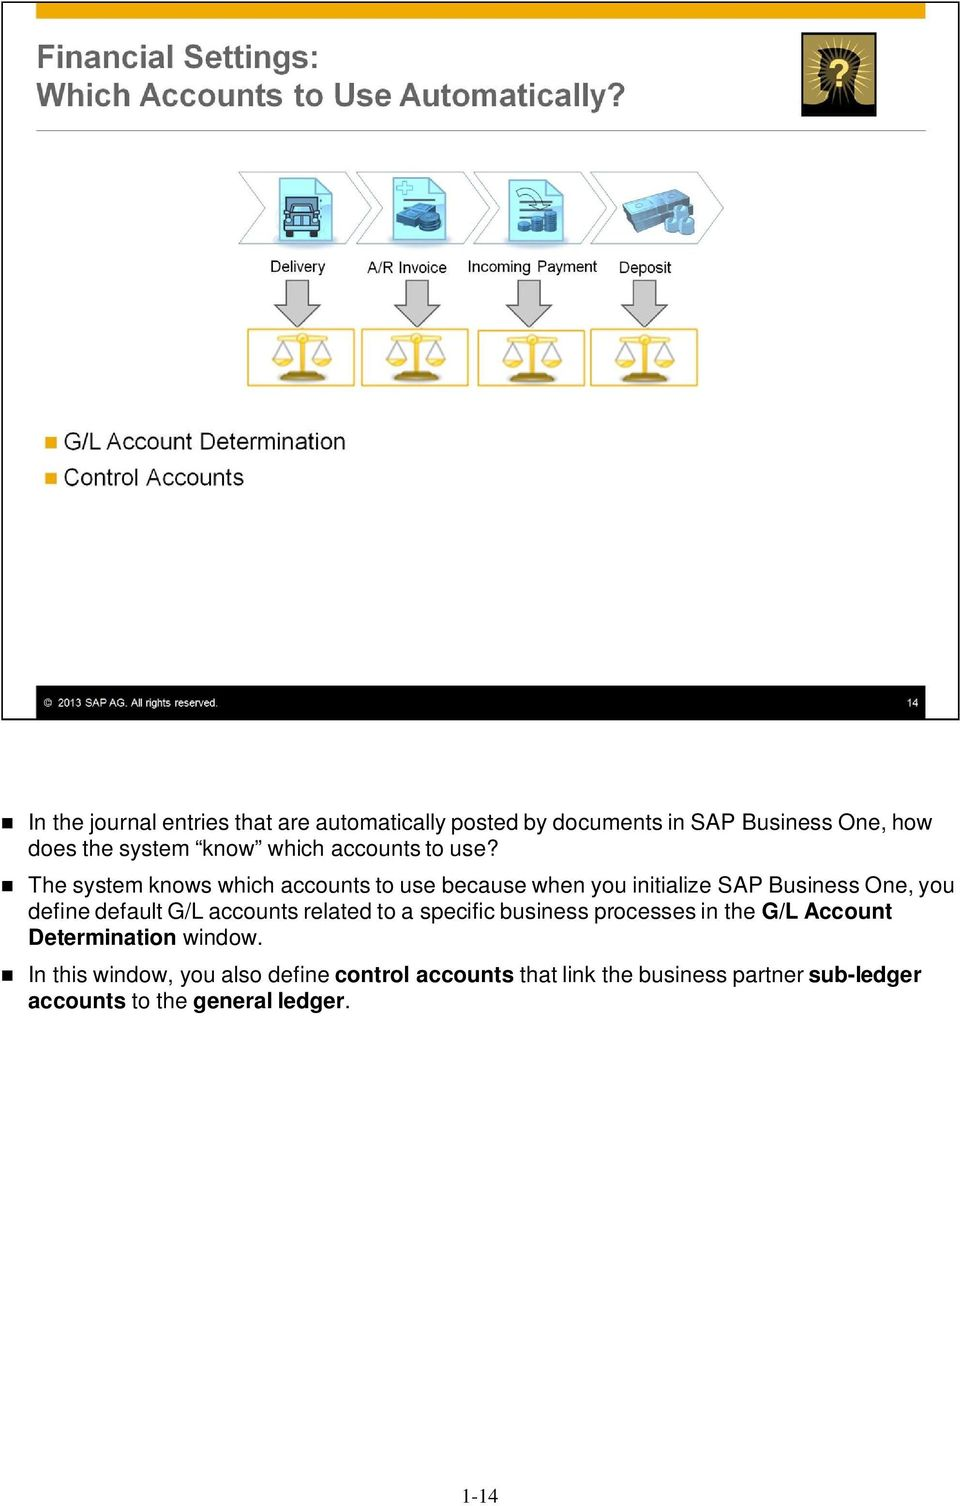 The system knows which accounts to use because when you initialize SAP Business One, you define default G/L